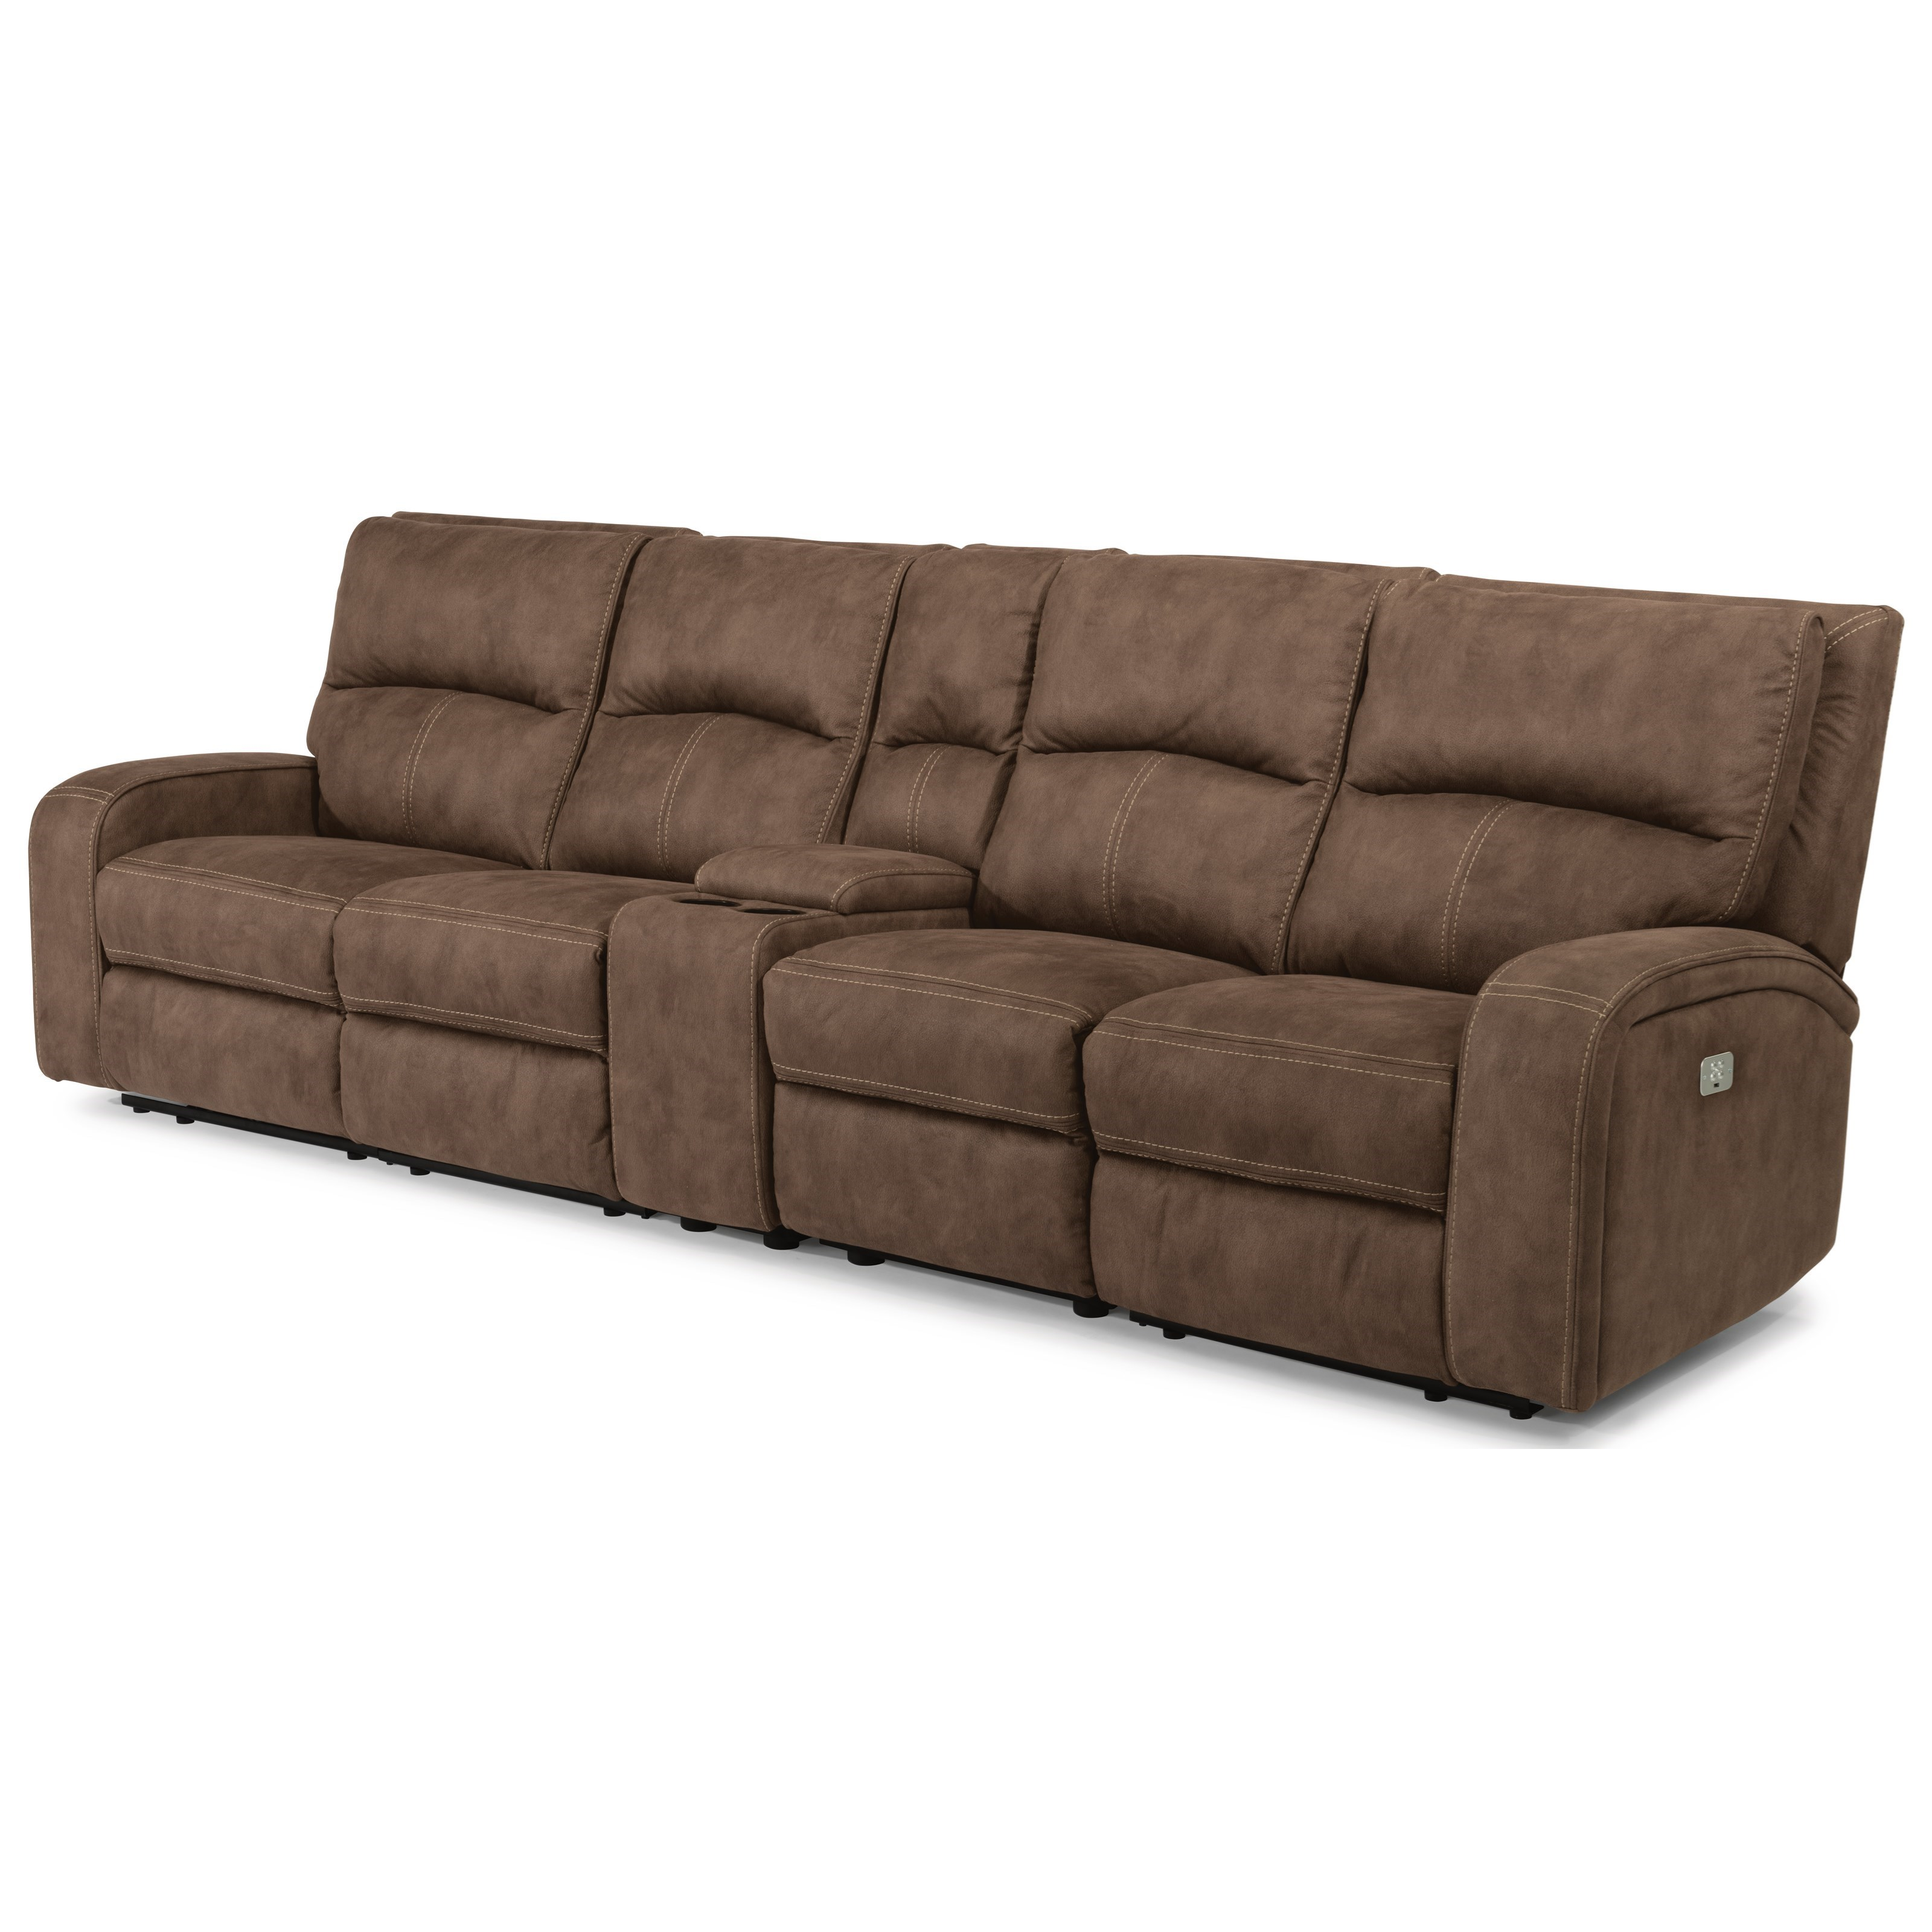 Latitudes - Nirvana Power Reclining Long Sectional by Flexsteel at Walker's Furniture